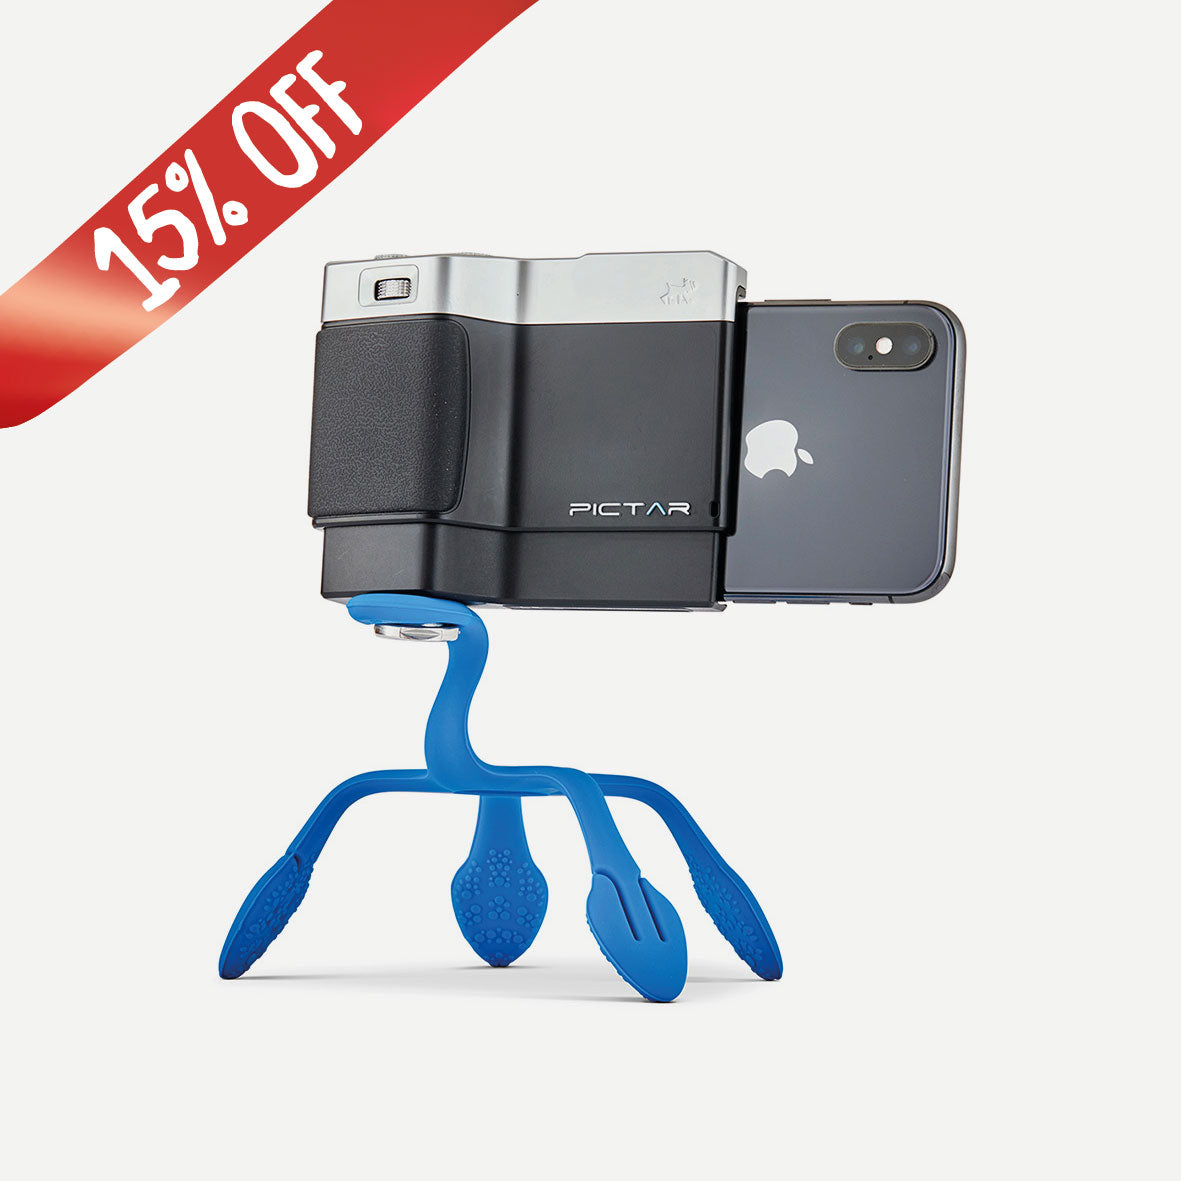 Pictar Smart Grip and Splat Flexible Tripod